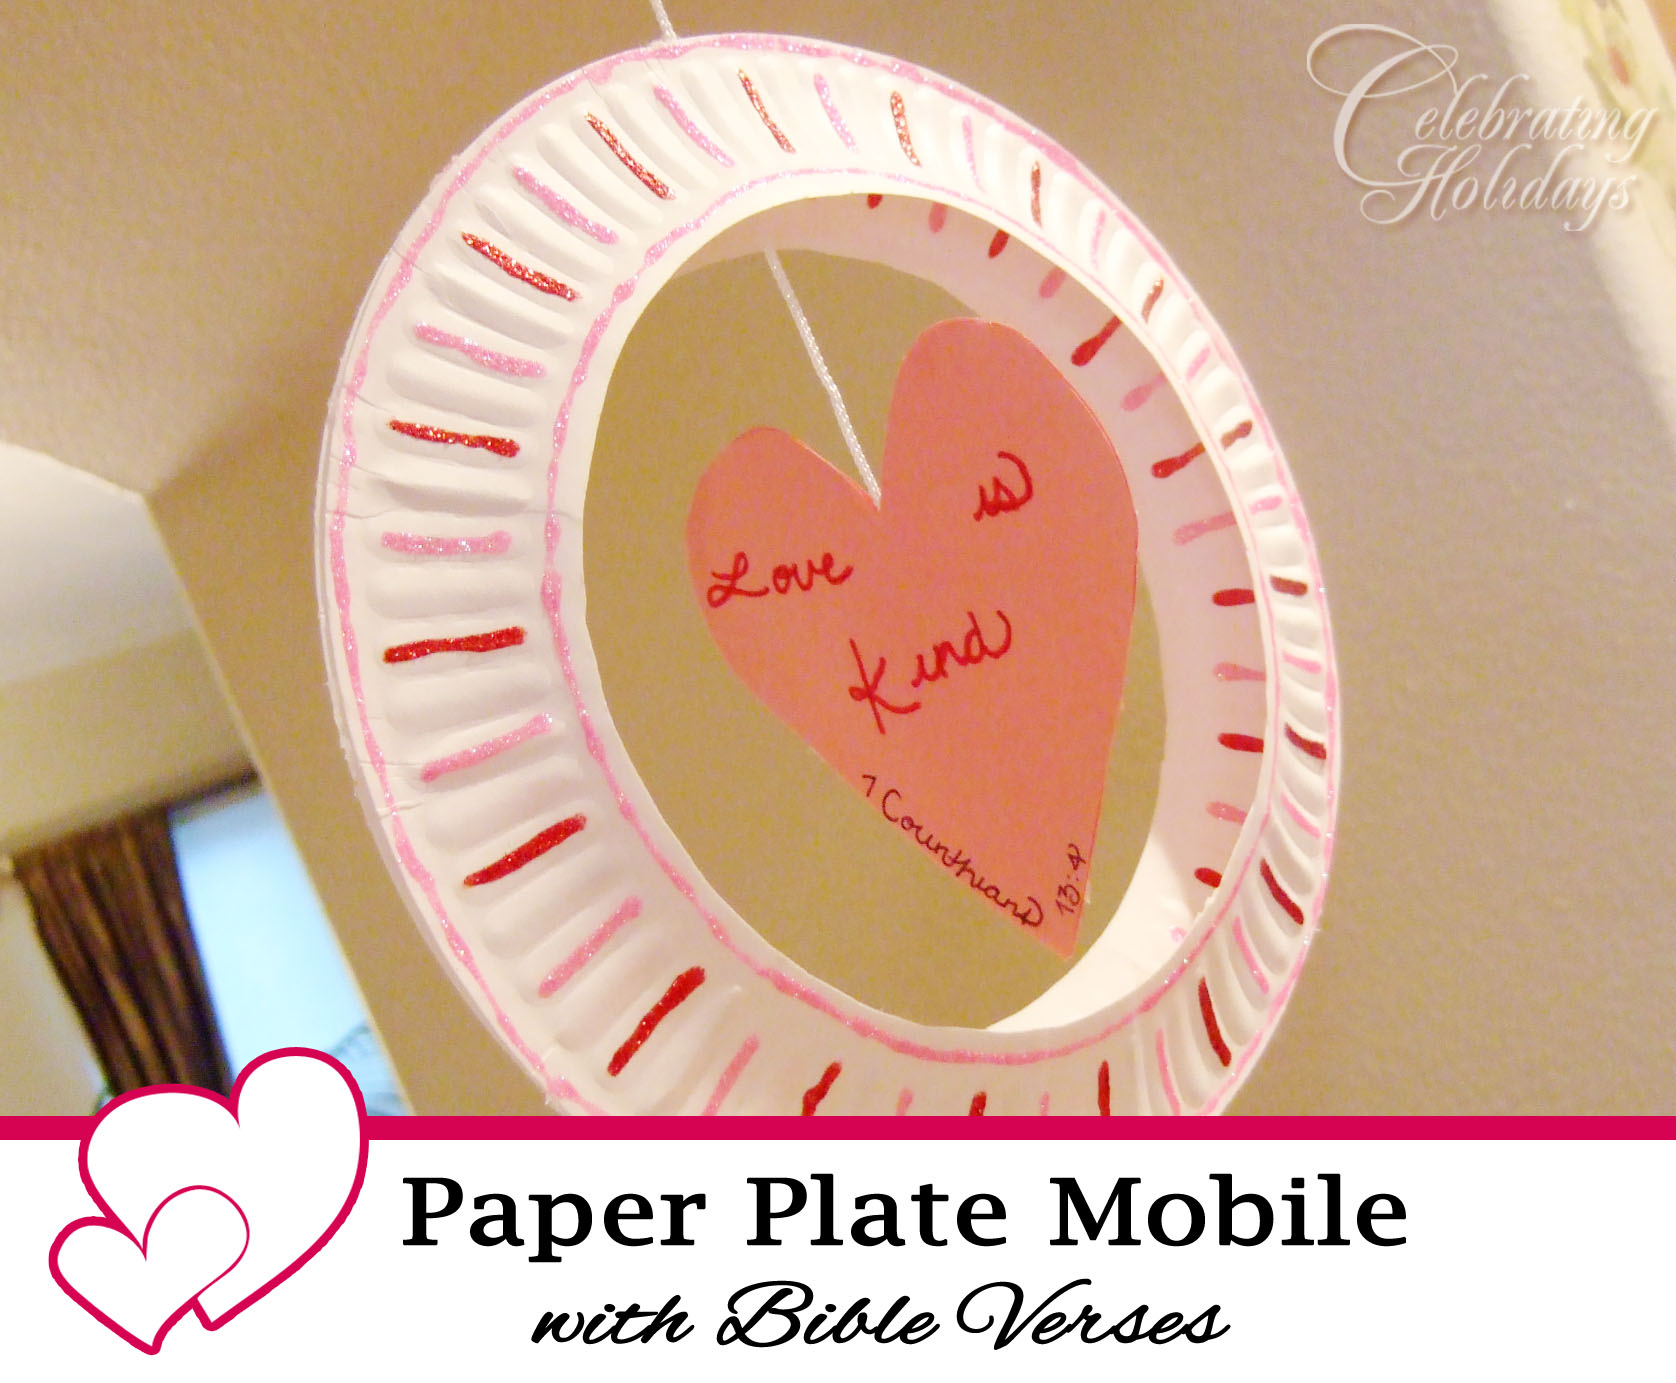 Paper Plate Mobile for Valentineu0027s Day  sc 1 st  Celebrating Holidays & Paper Plate Mobile Craft with a Bible Verse | Celebrating Holidays